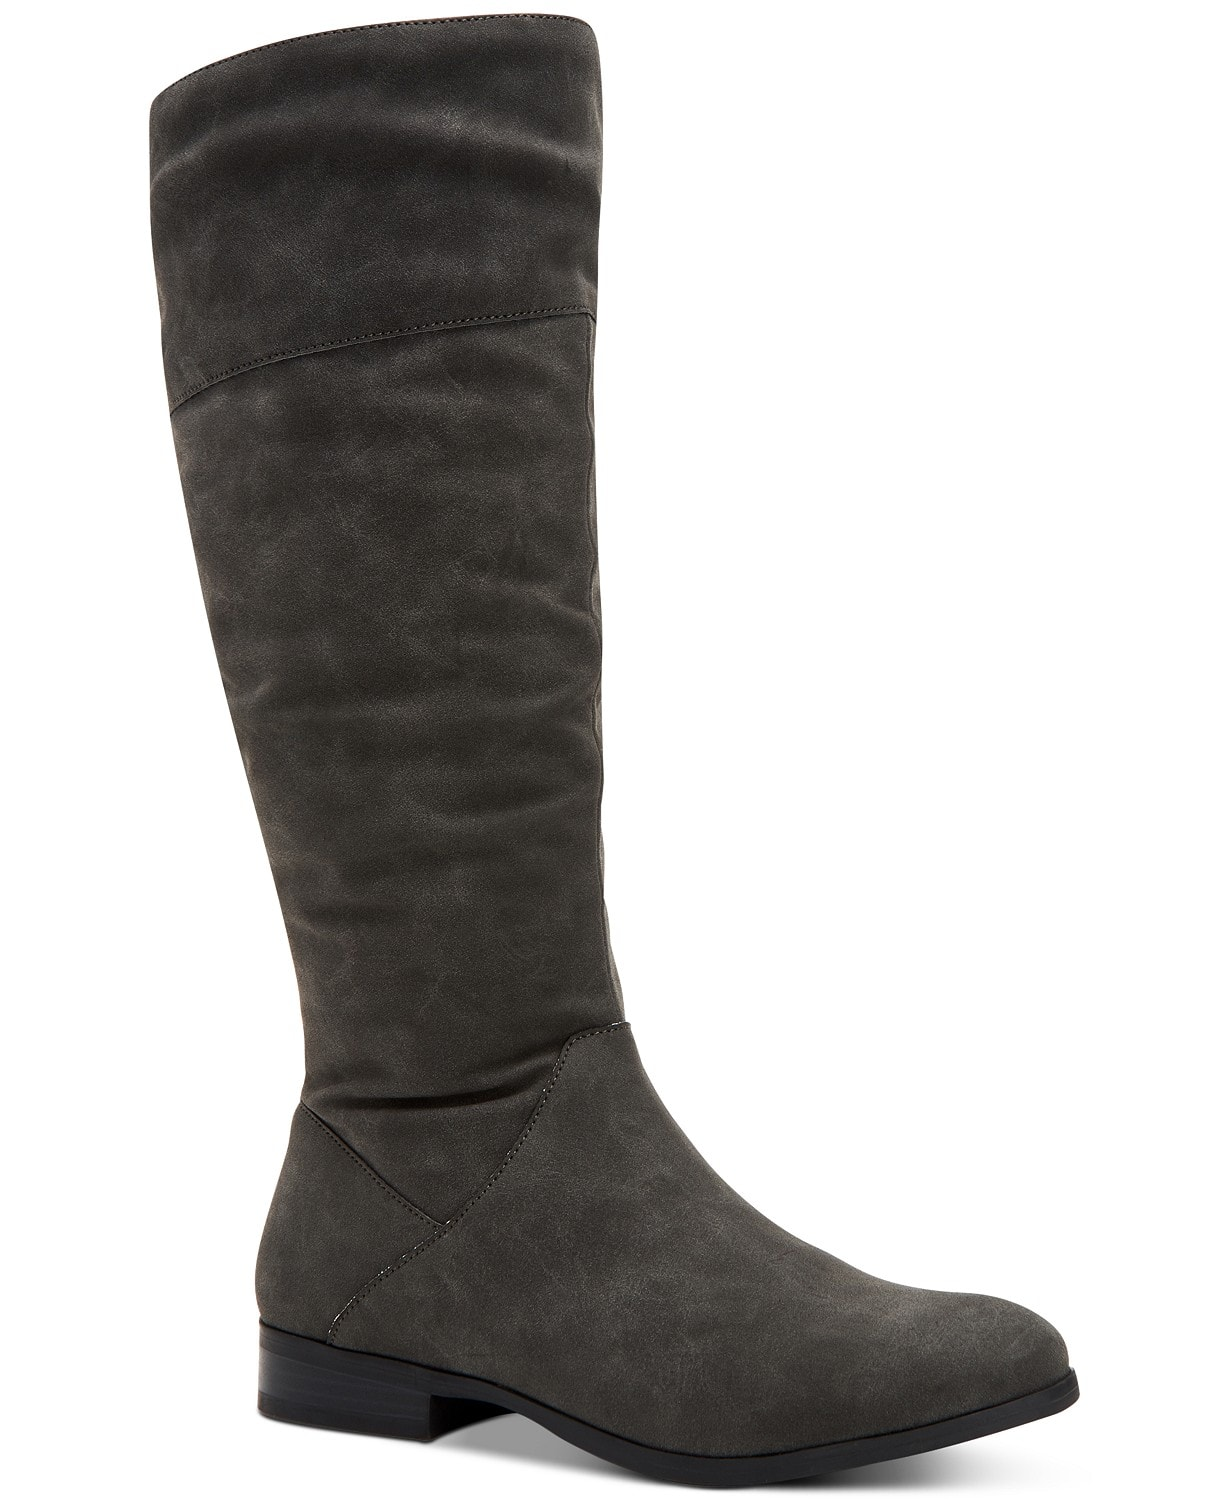 Macys Outerwear Flash Sale: Women's Style & Co Boots (Sachi Scrunched or Block Heel) $15 & More + Free Shipping on $25+